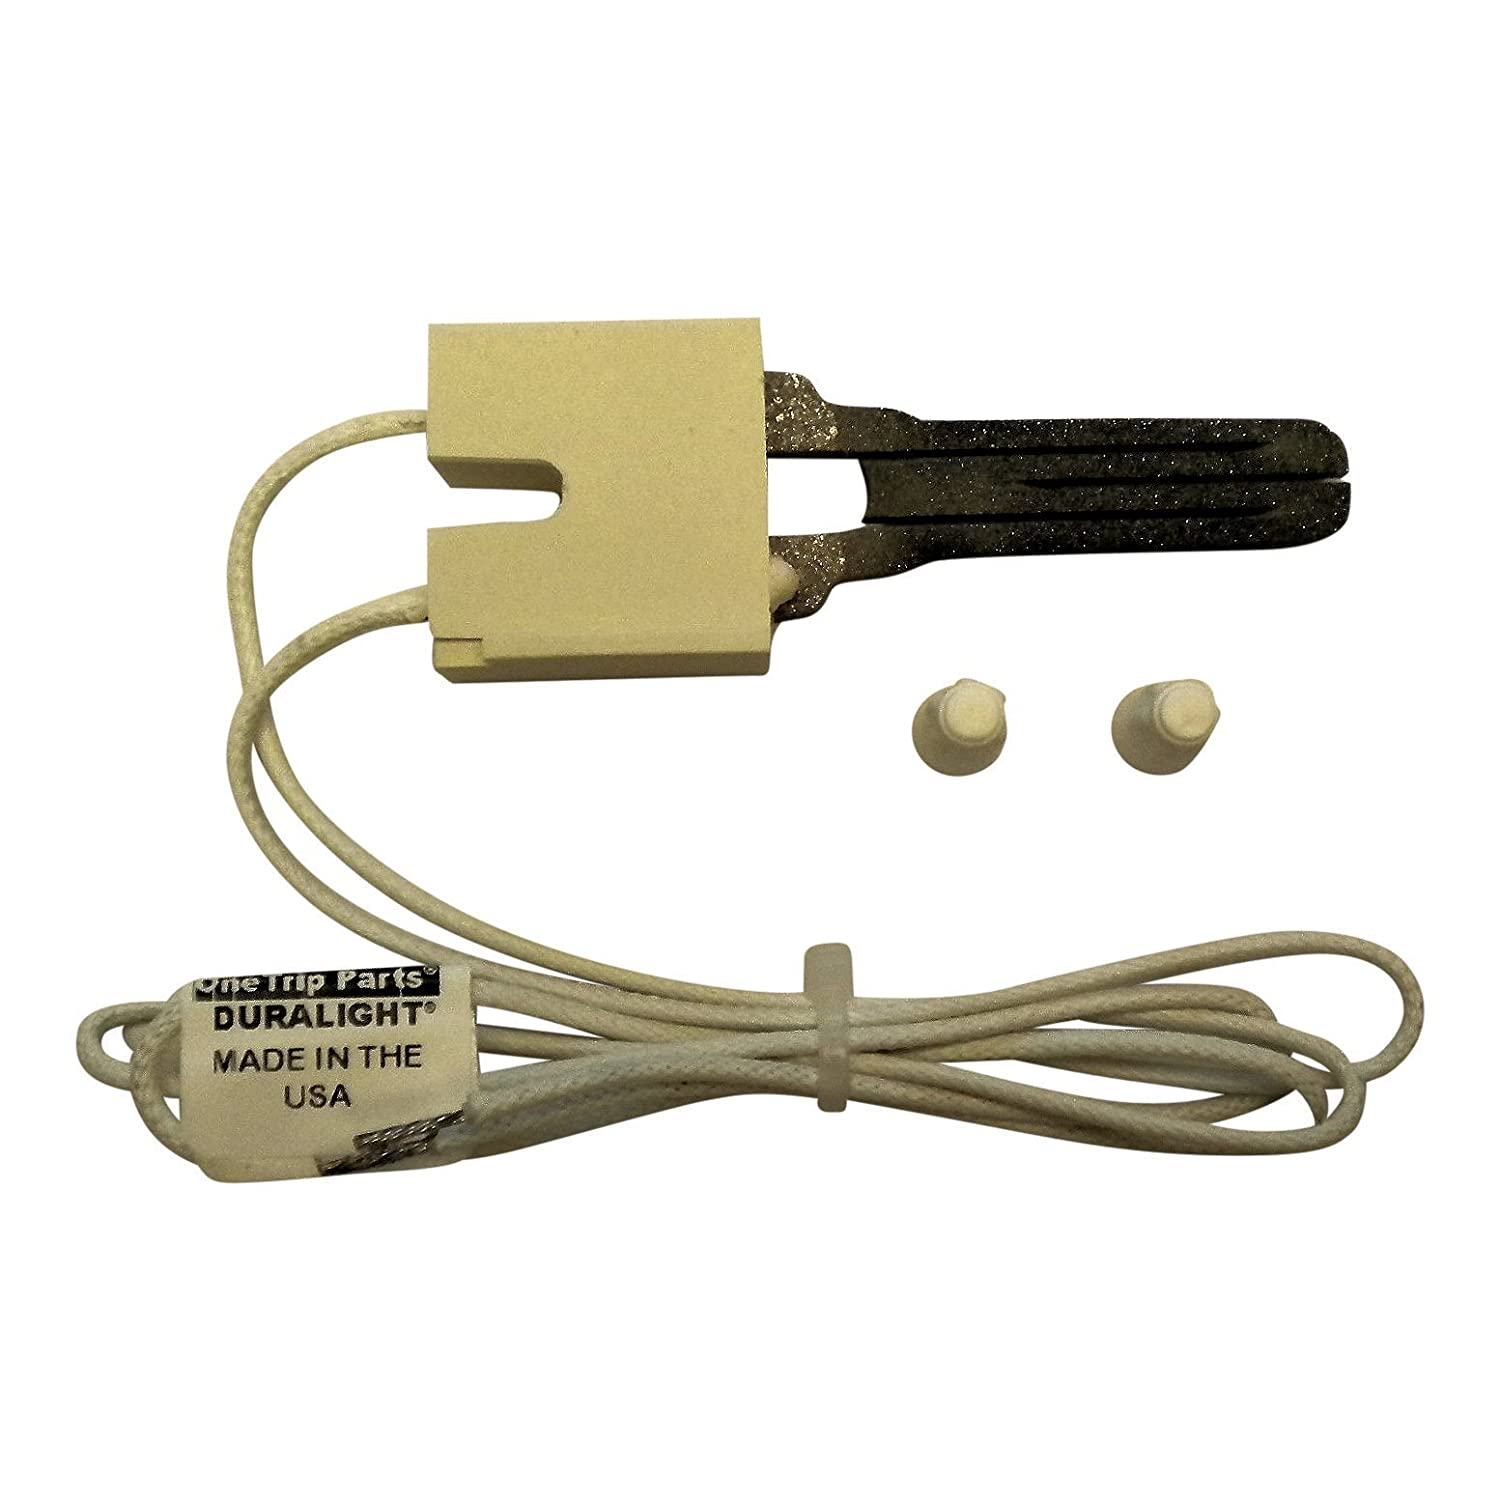 and 025-41021-000 Duralight Ignitor Universal Replacement for Coleman Evcon Mobile Home Furnaces 1474-051P 1474-052P